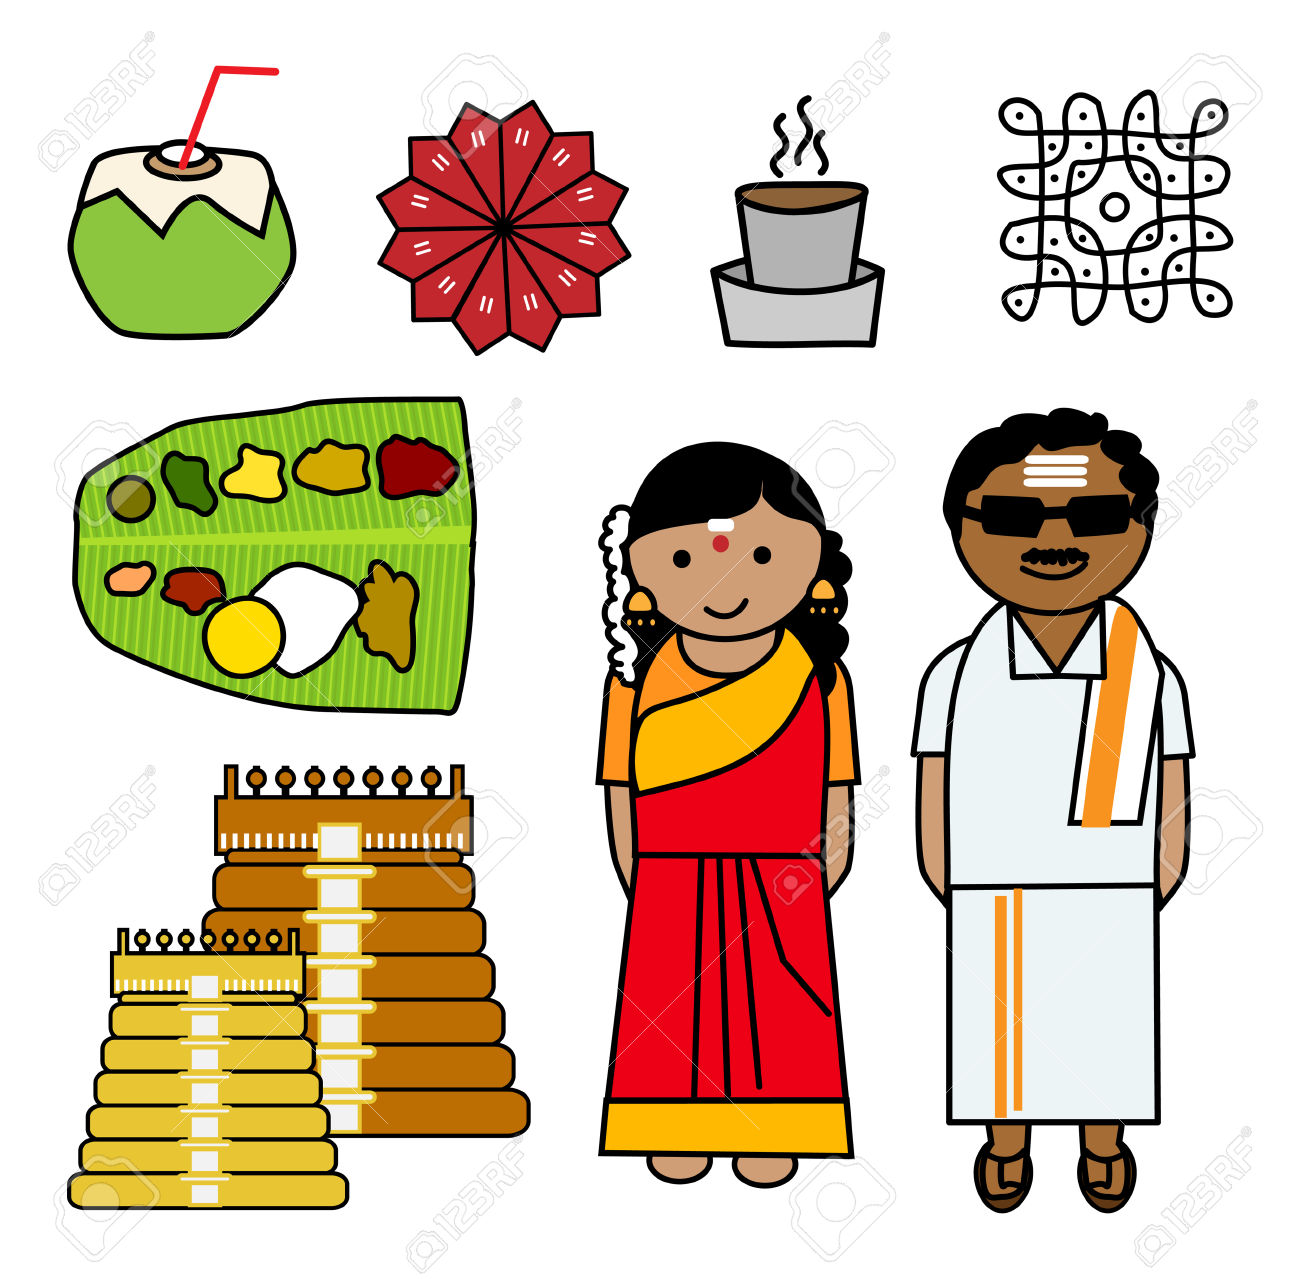 South indian clipart.